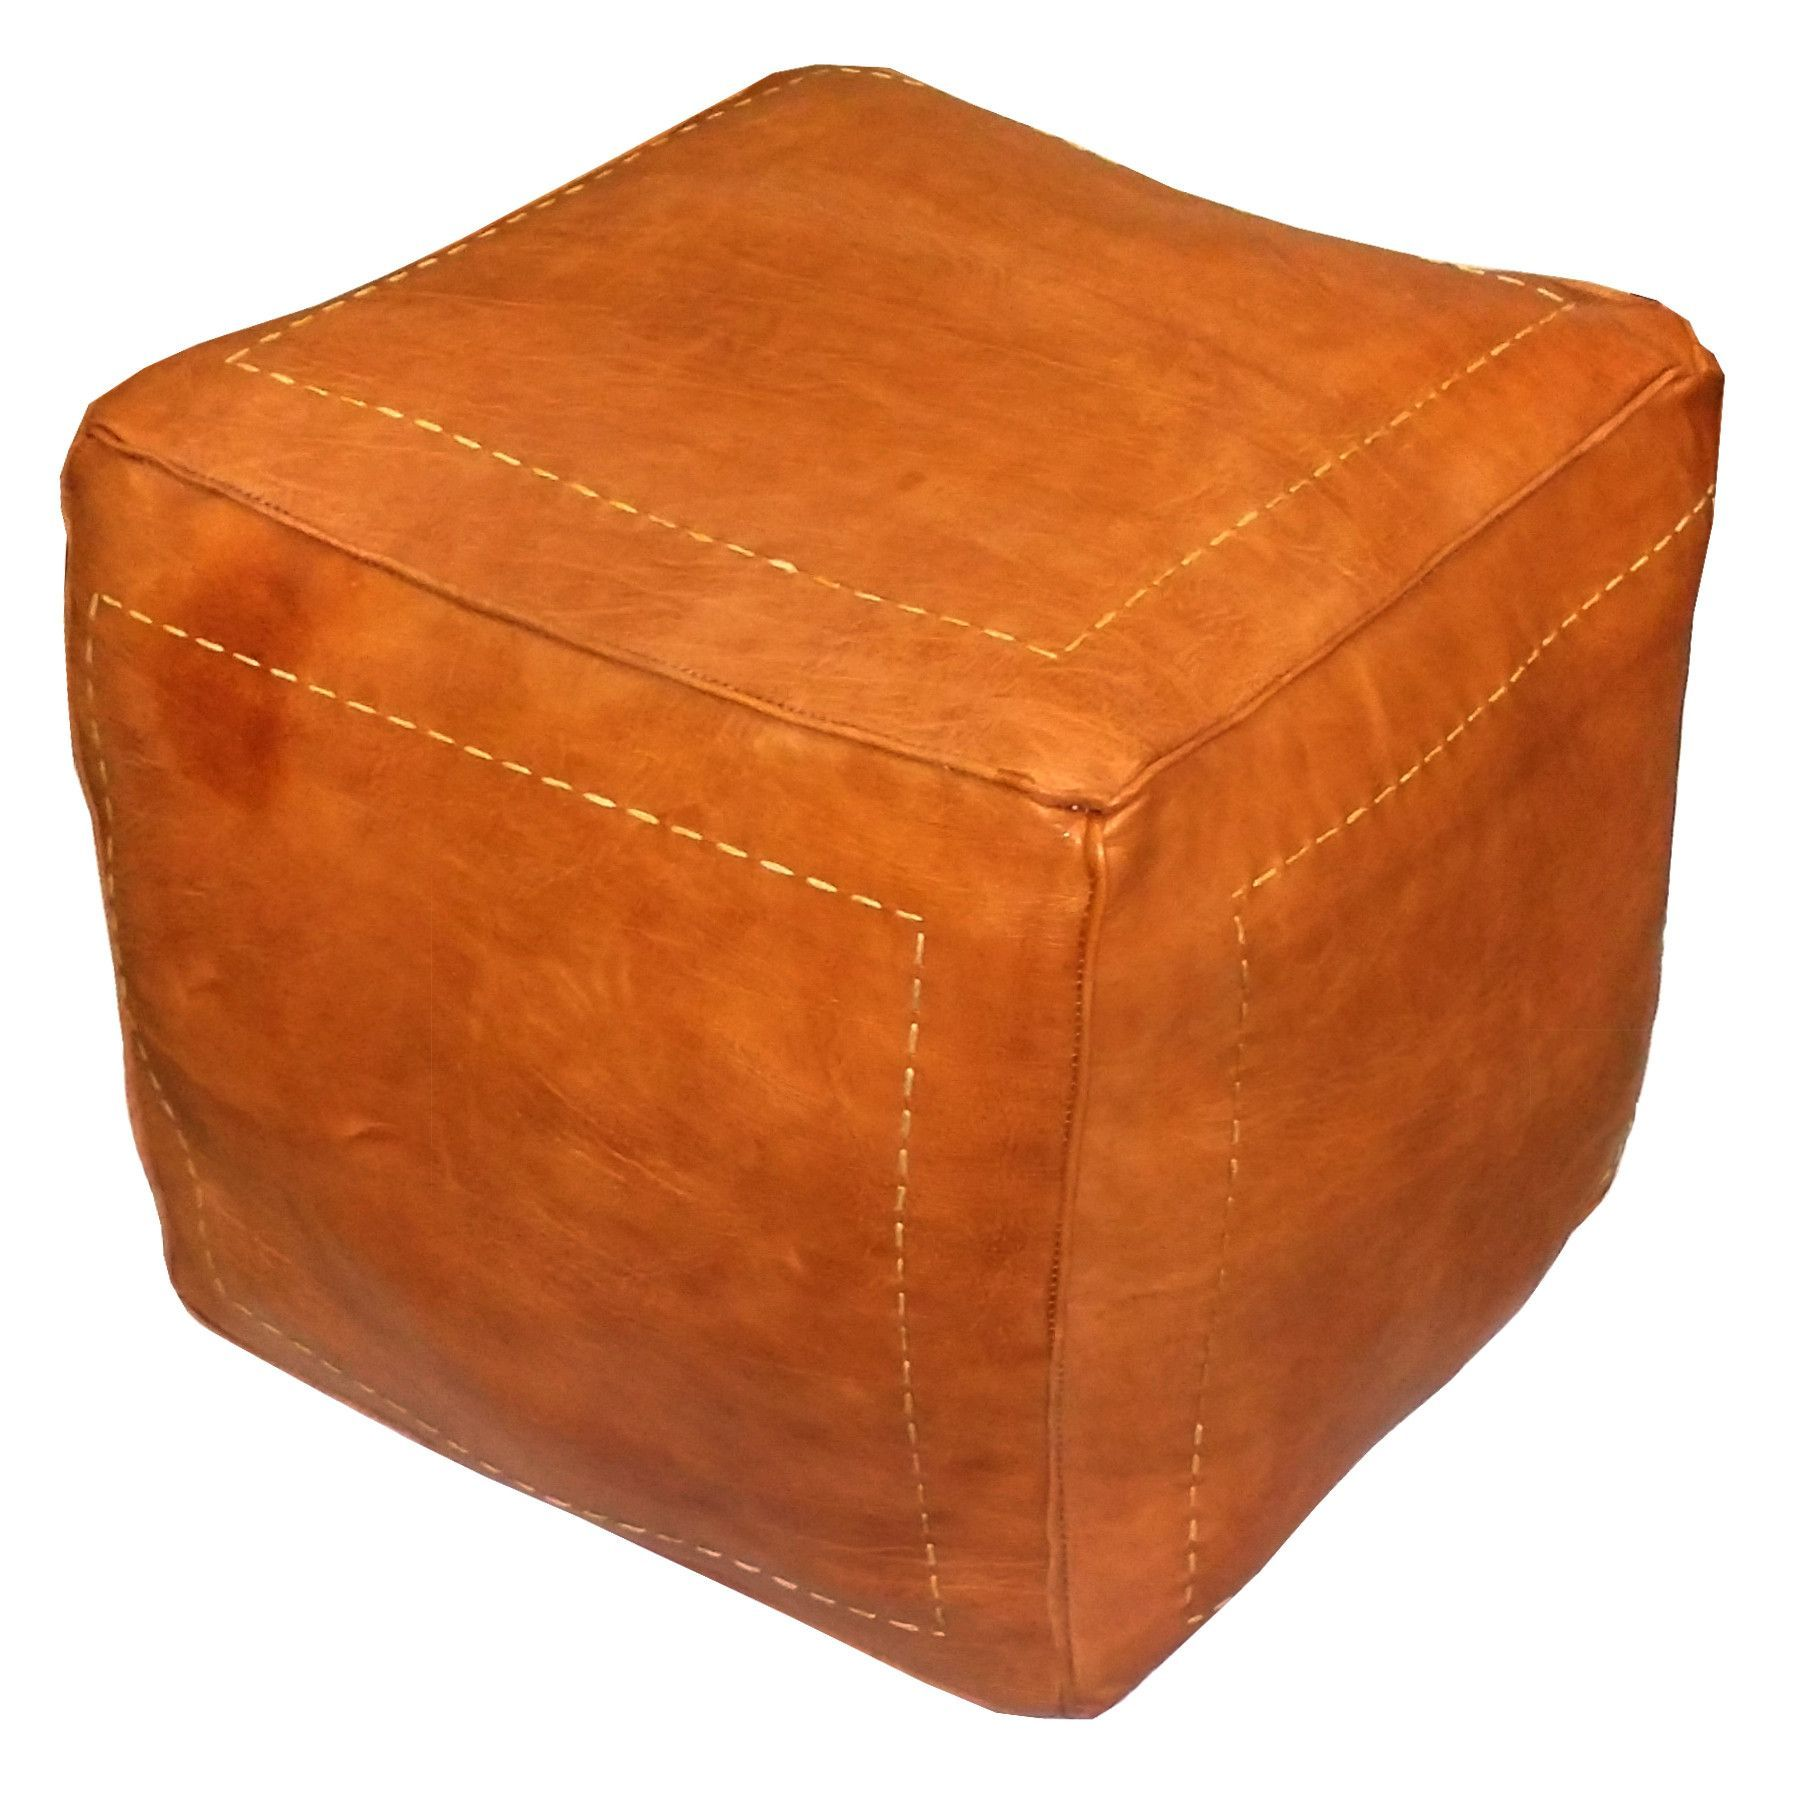 square moroccan leather poufs dark orange square genuine leather. square moroccan leather poufs dark orange square genuine leather